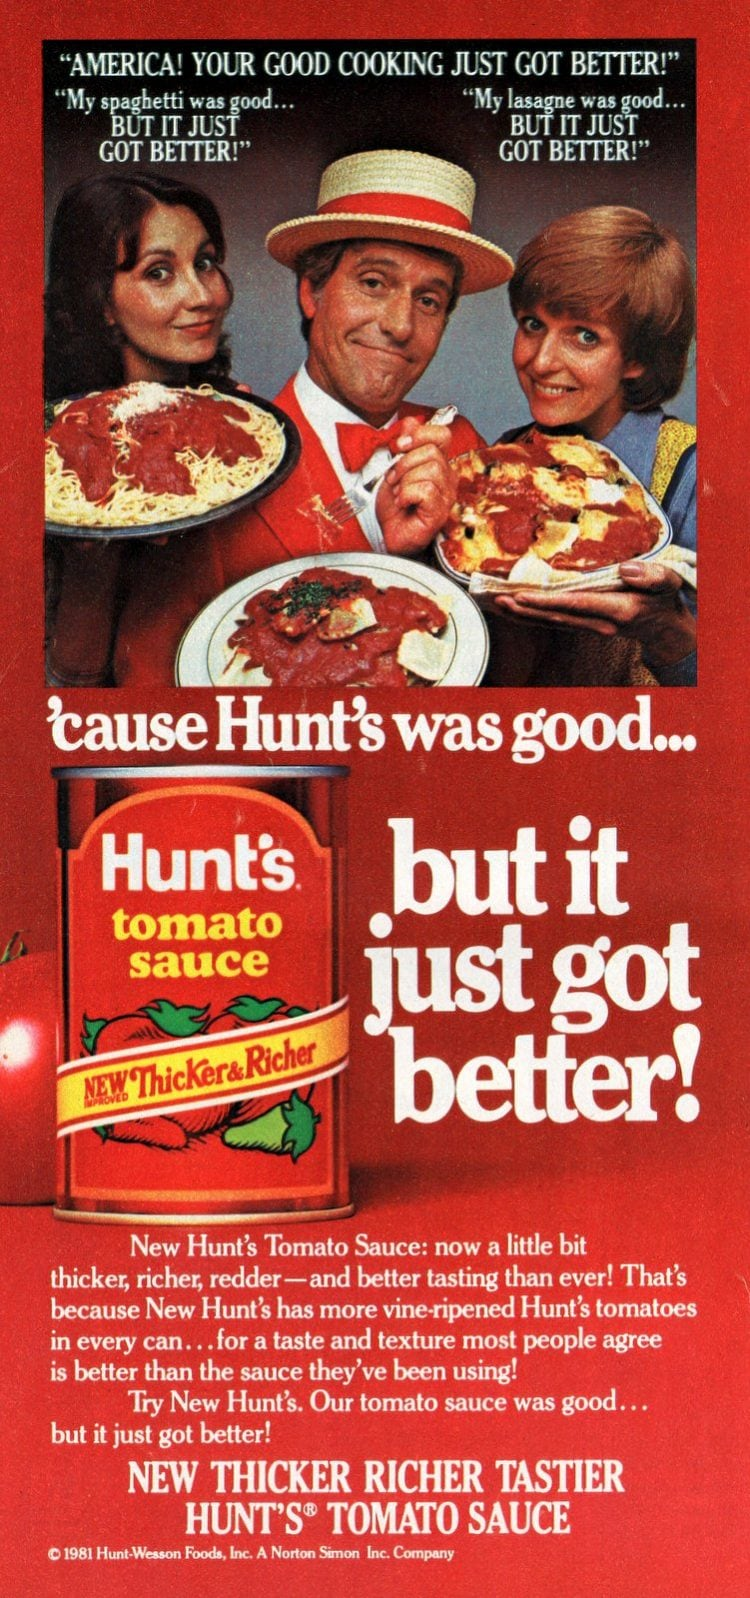 Dick Van Dyke for Hunts - Feb 1982